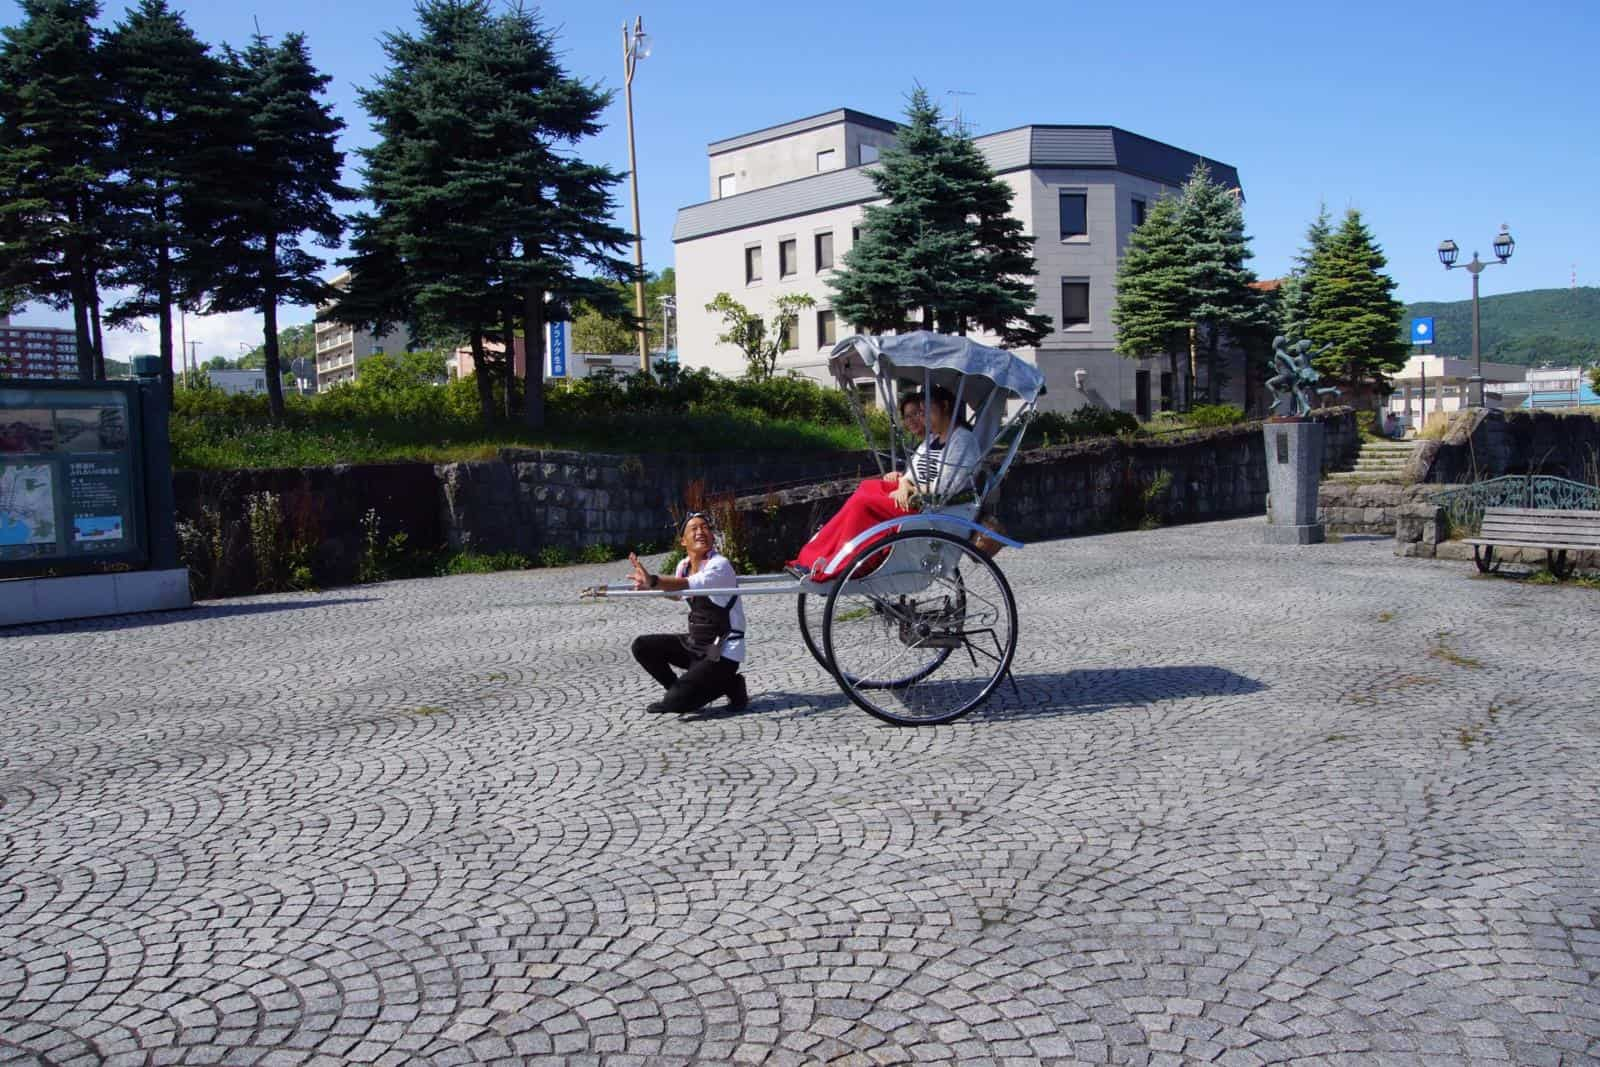 Take a Rickshaw Ride on your One Day in Otaru itinerary